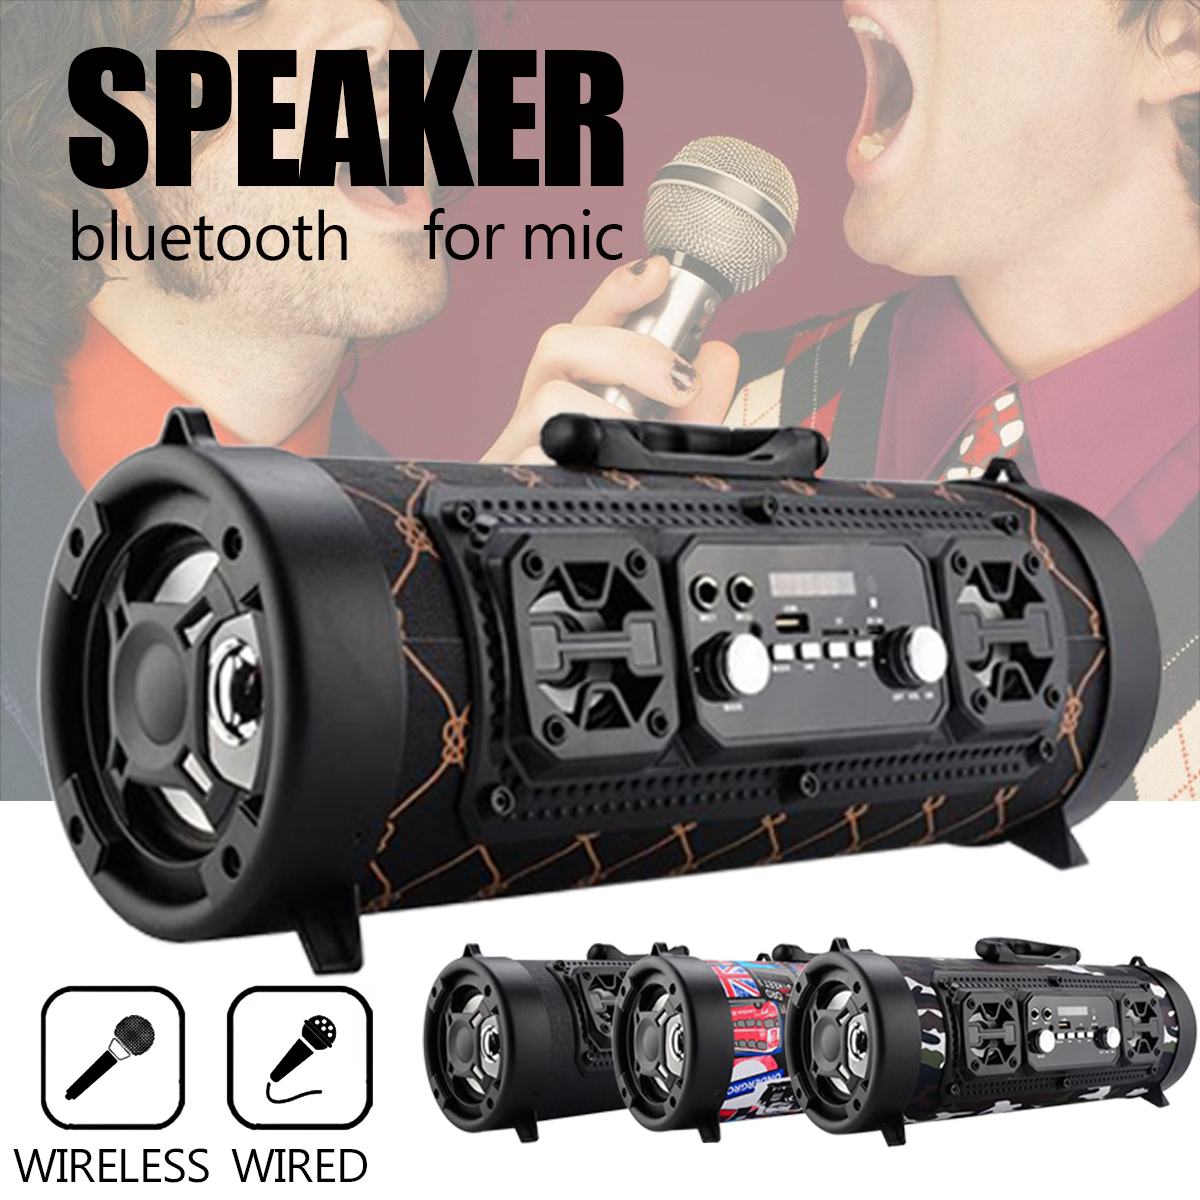 Portable Wireless Bluetooth 4.2 Speaker s